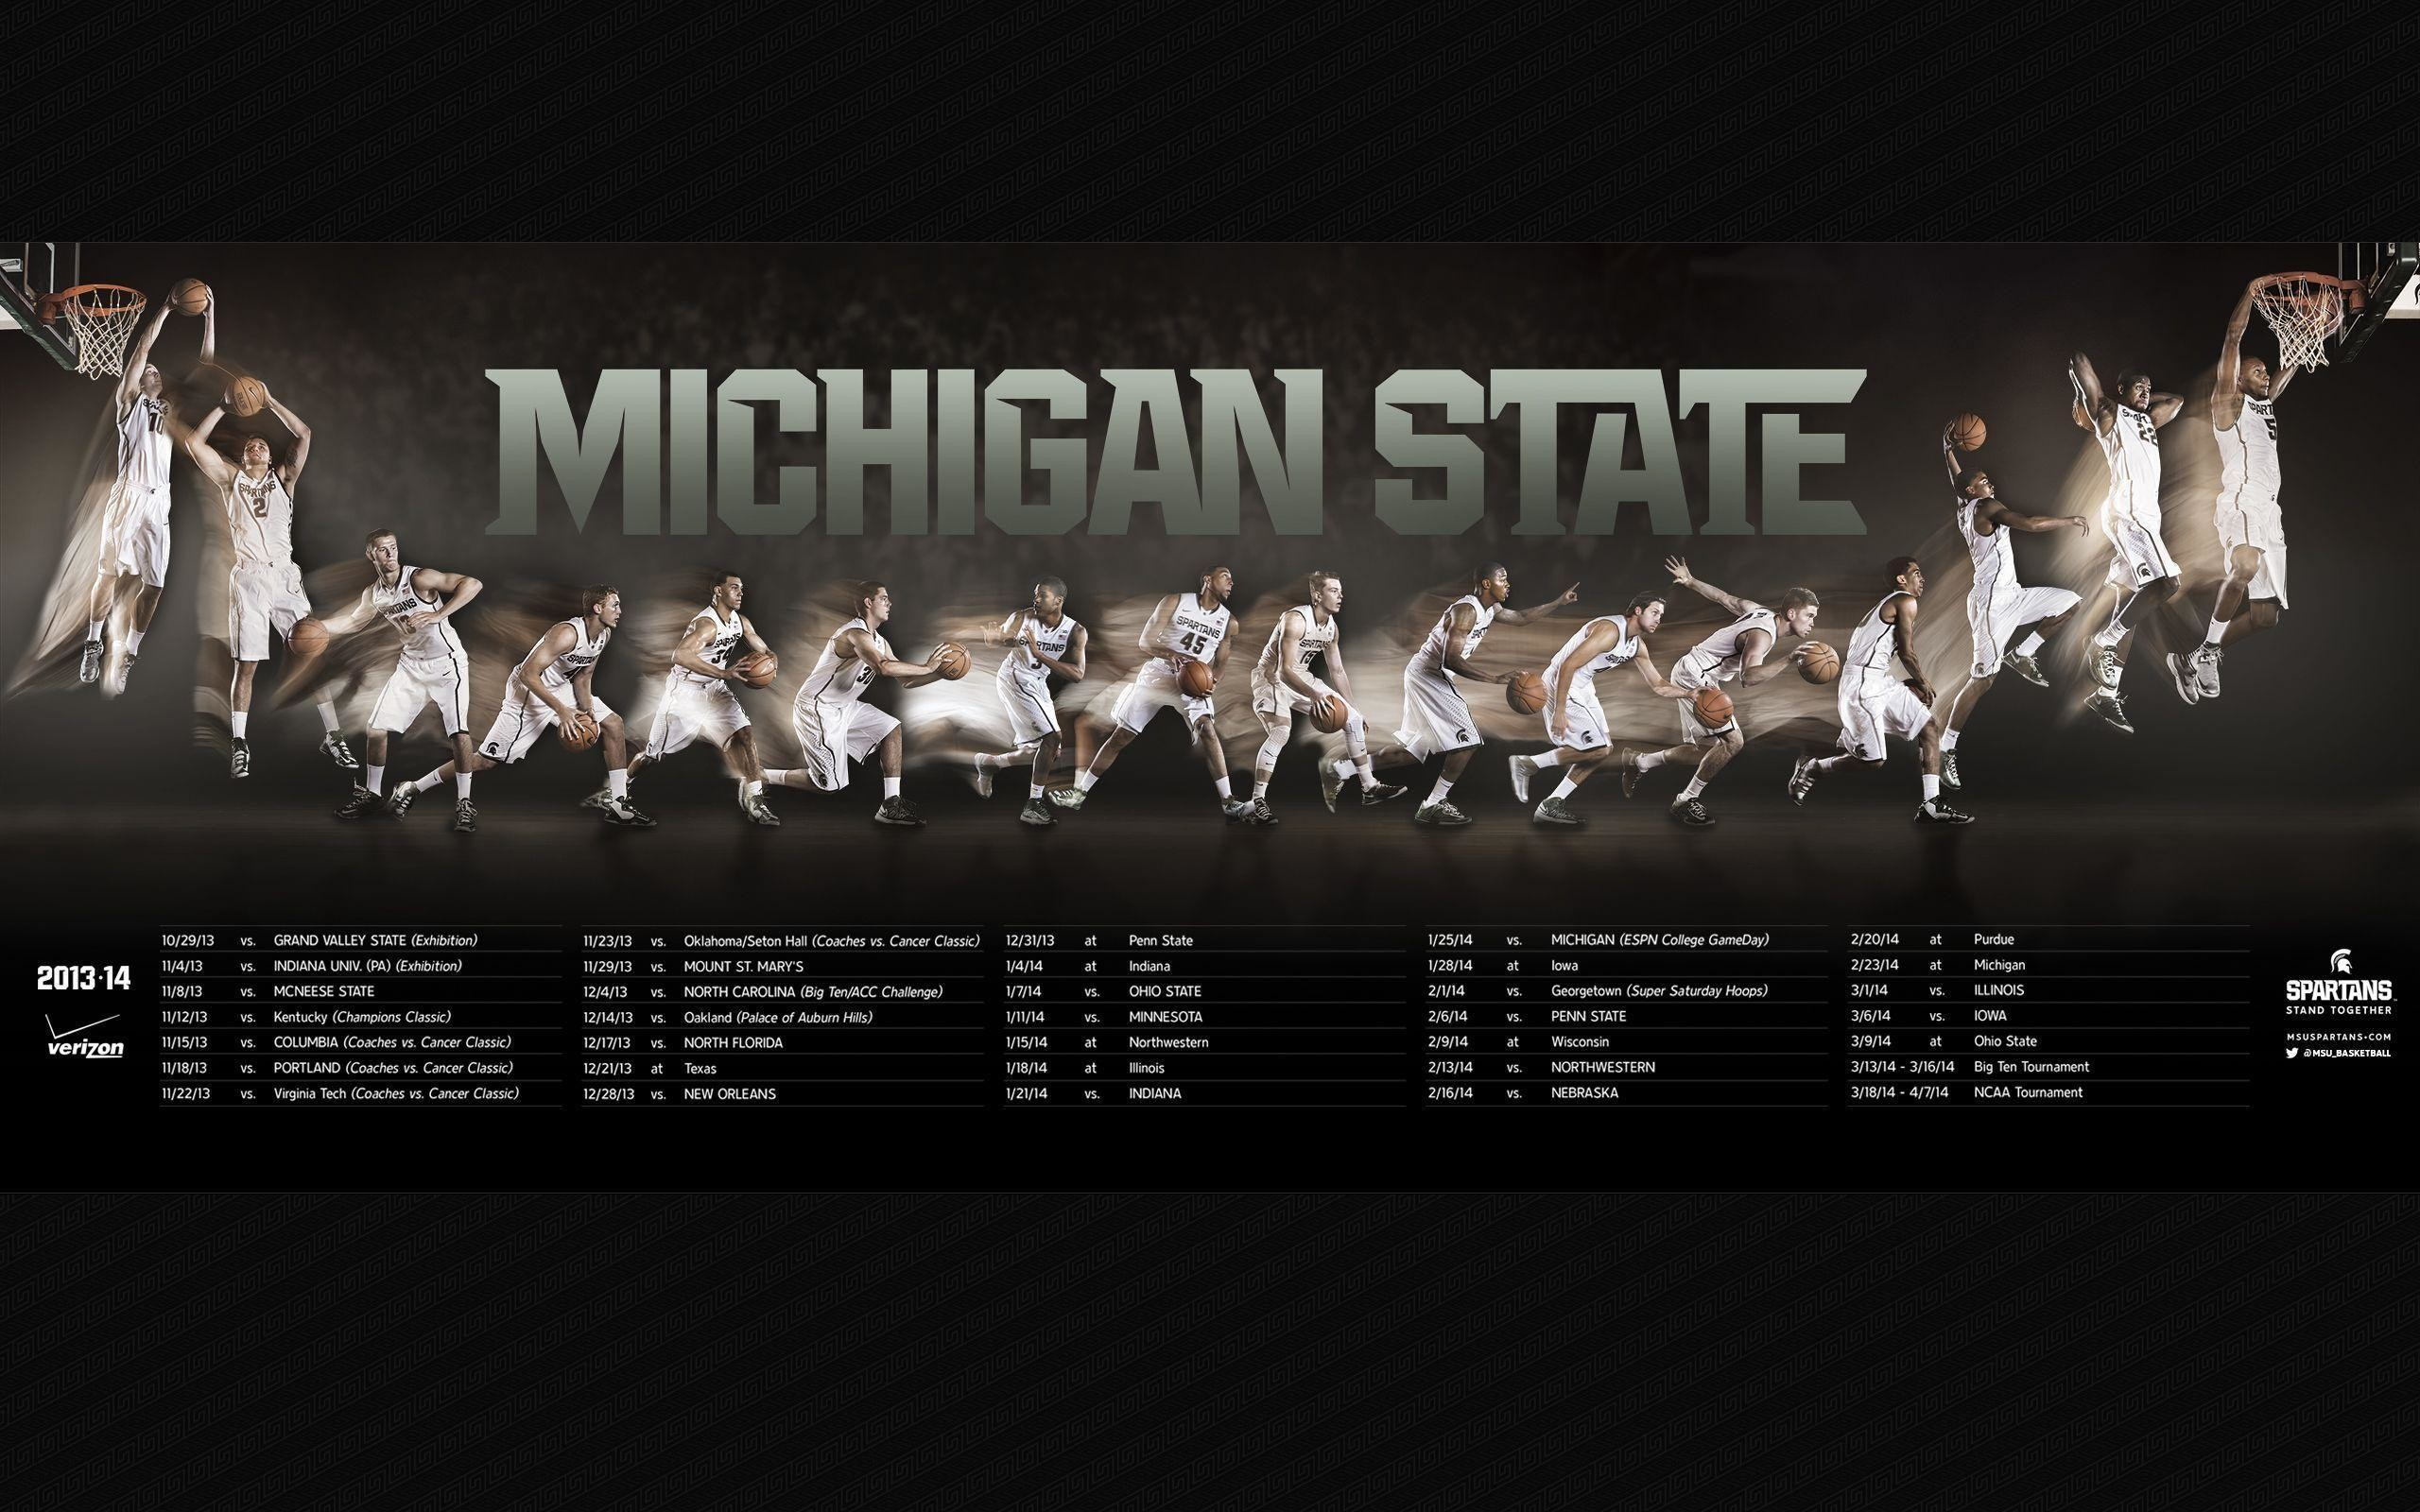 2560x1600 Michigan State Iphone | cute Wallpapers